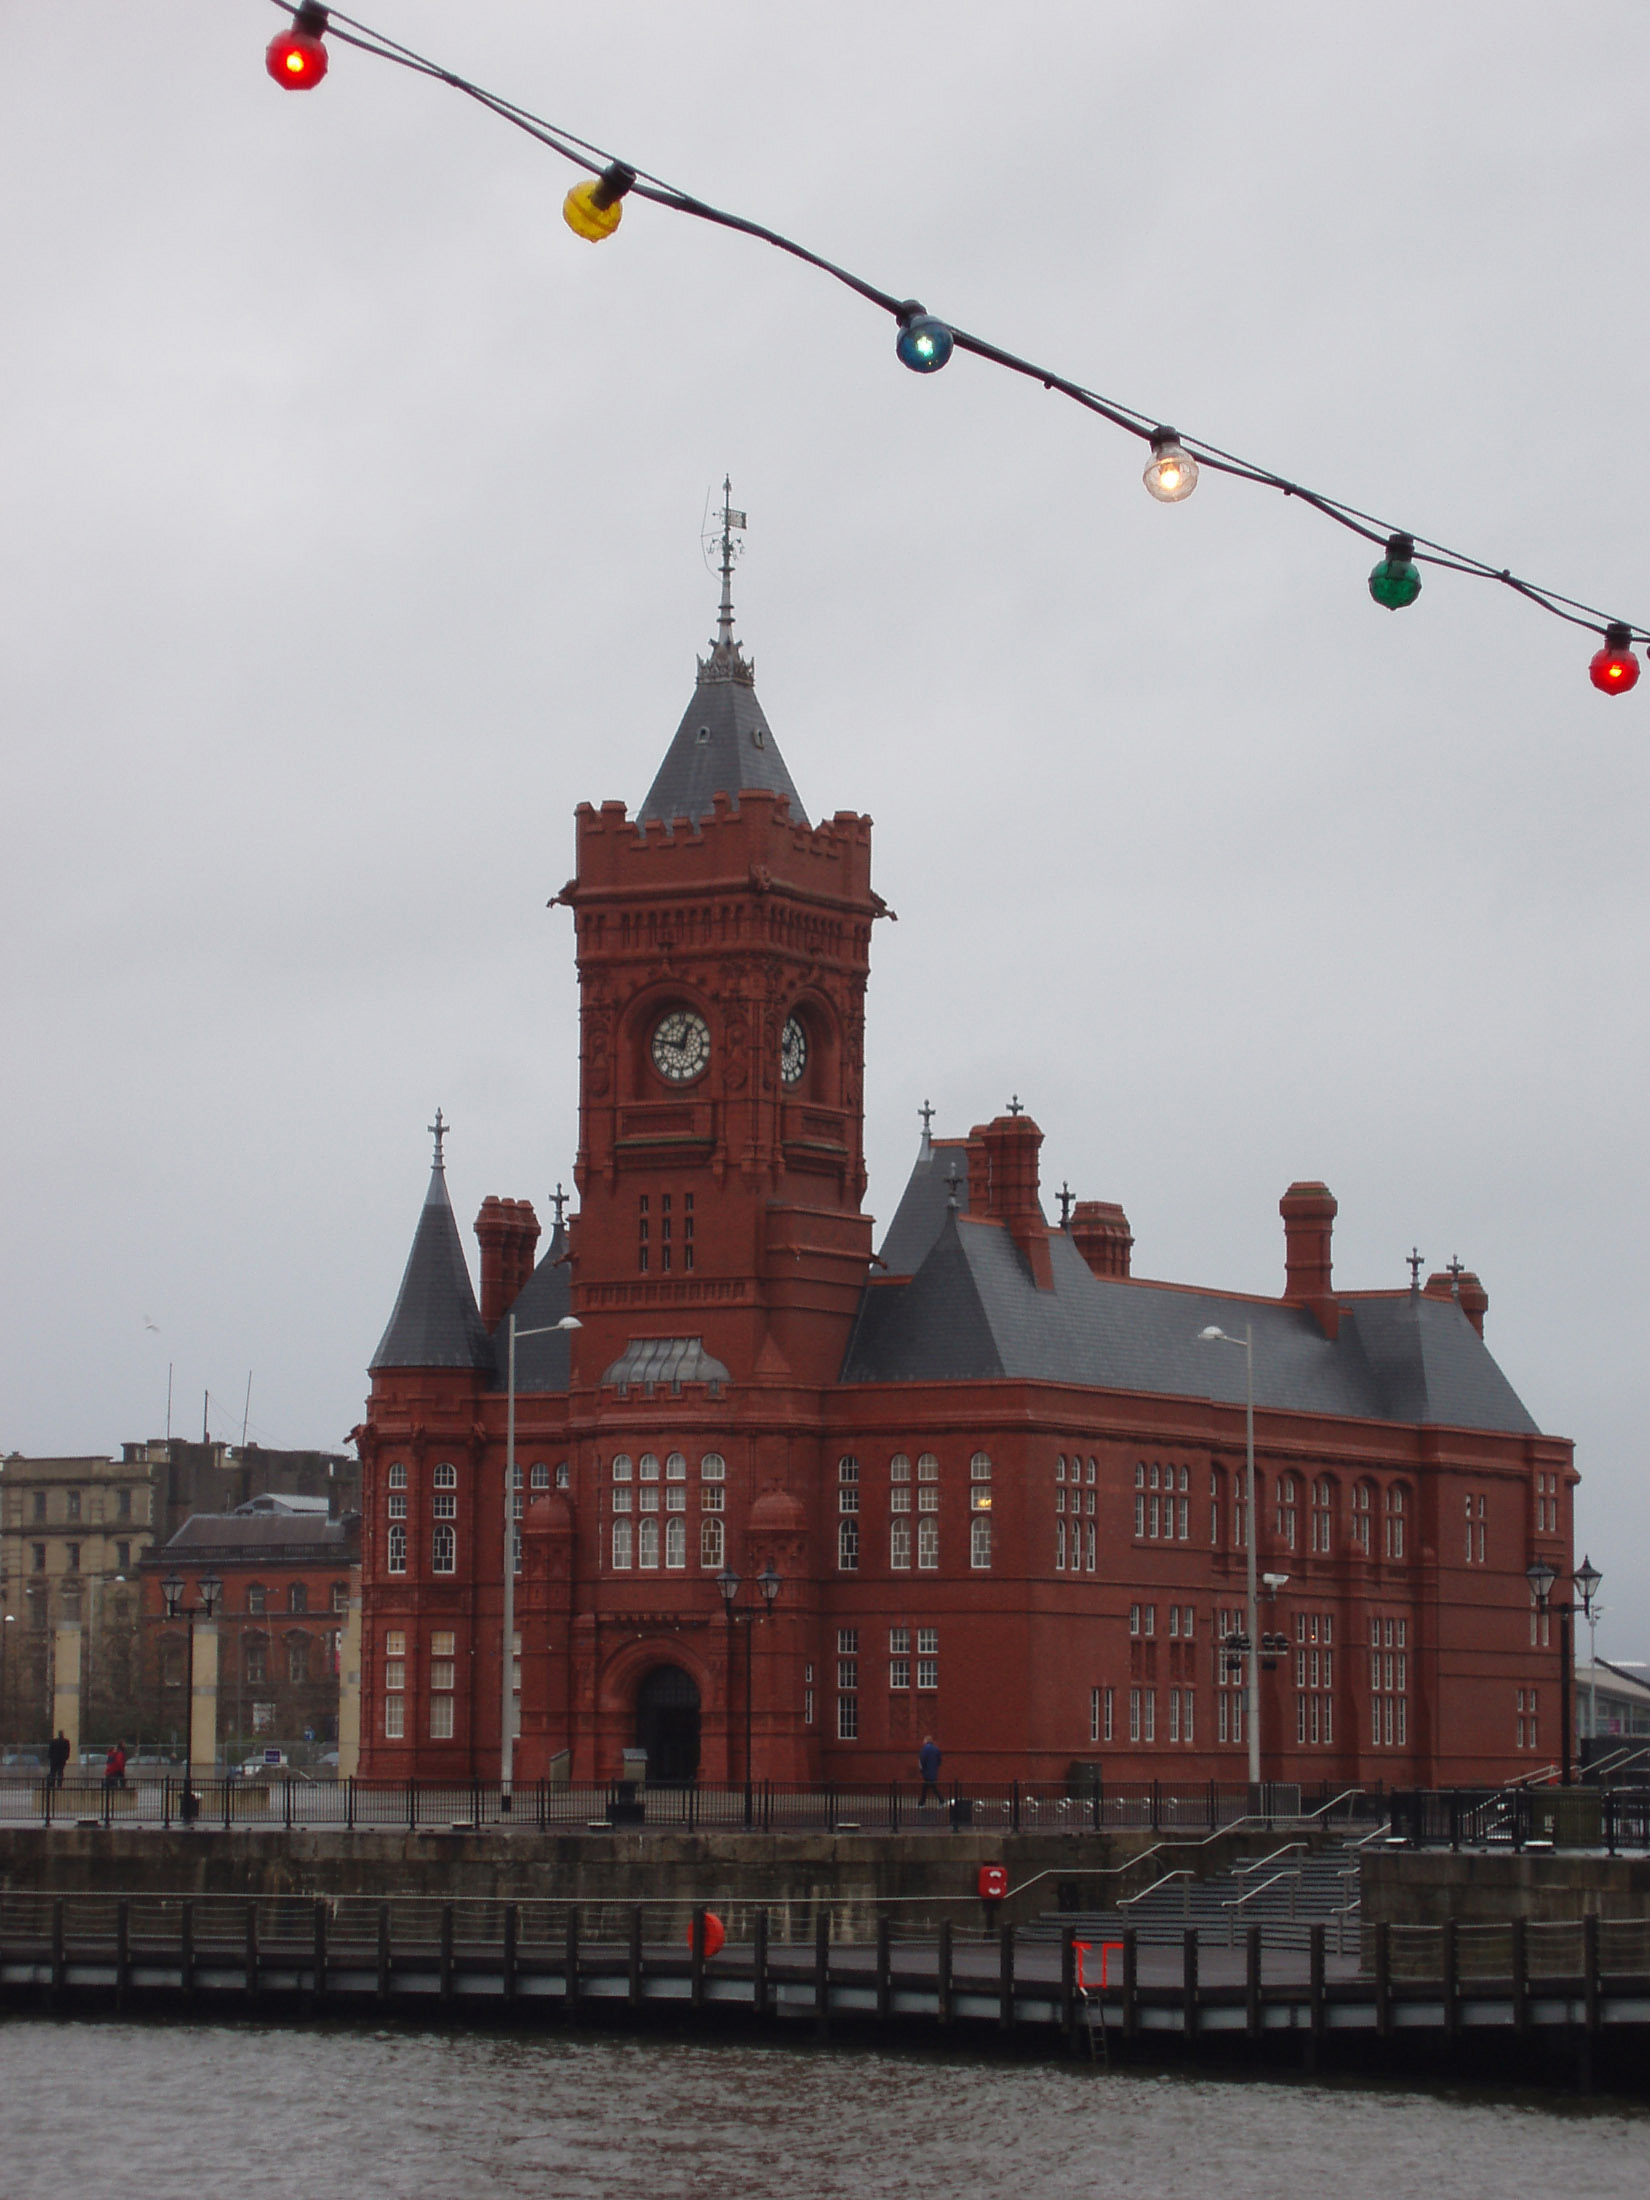 Pierhead Building in Cardiff Bay, Wales. Captured on a Stormy Sky Background.